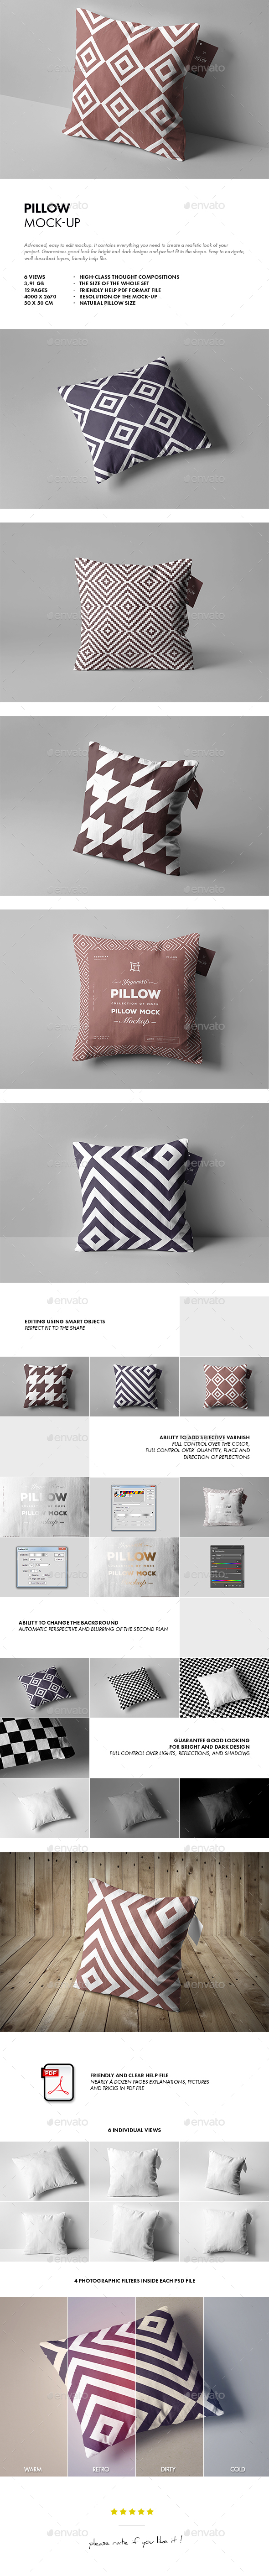 Pillow Mock-up - Miscellaneous Apparel